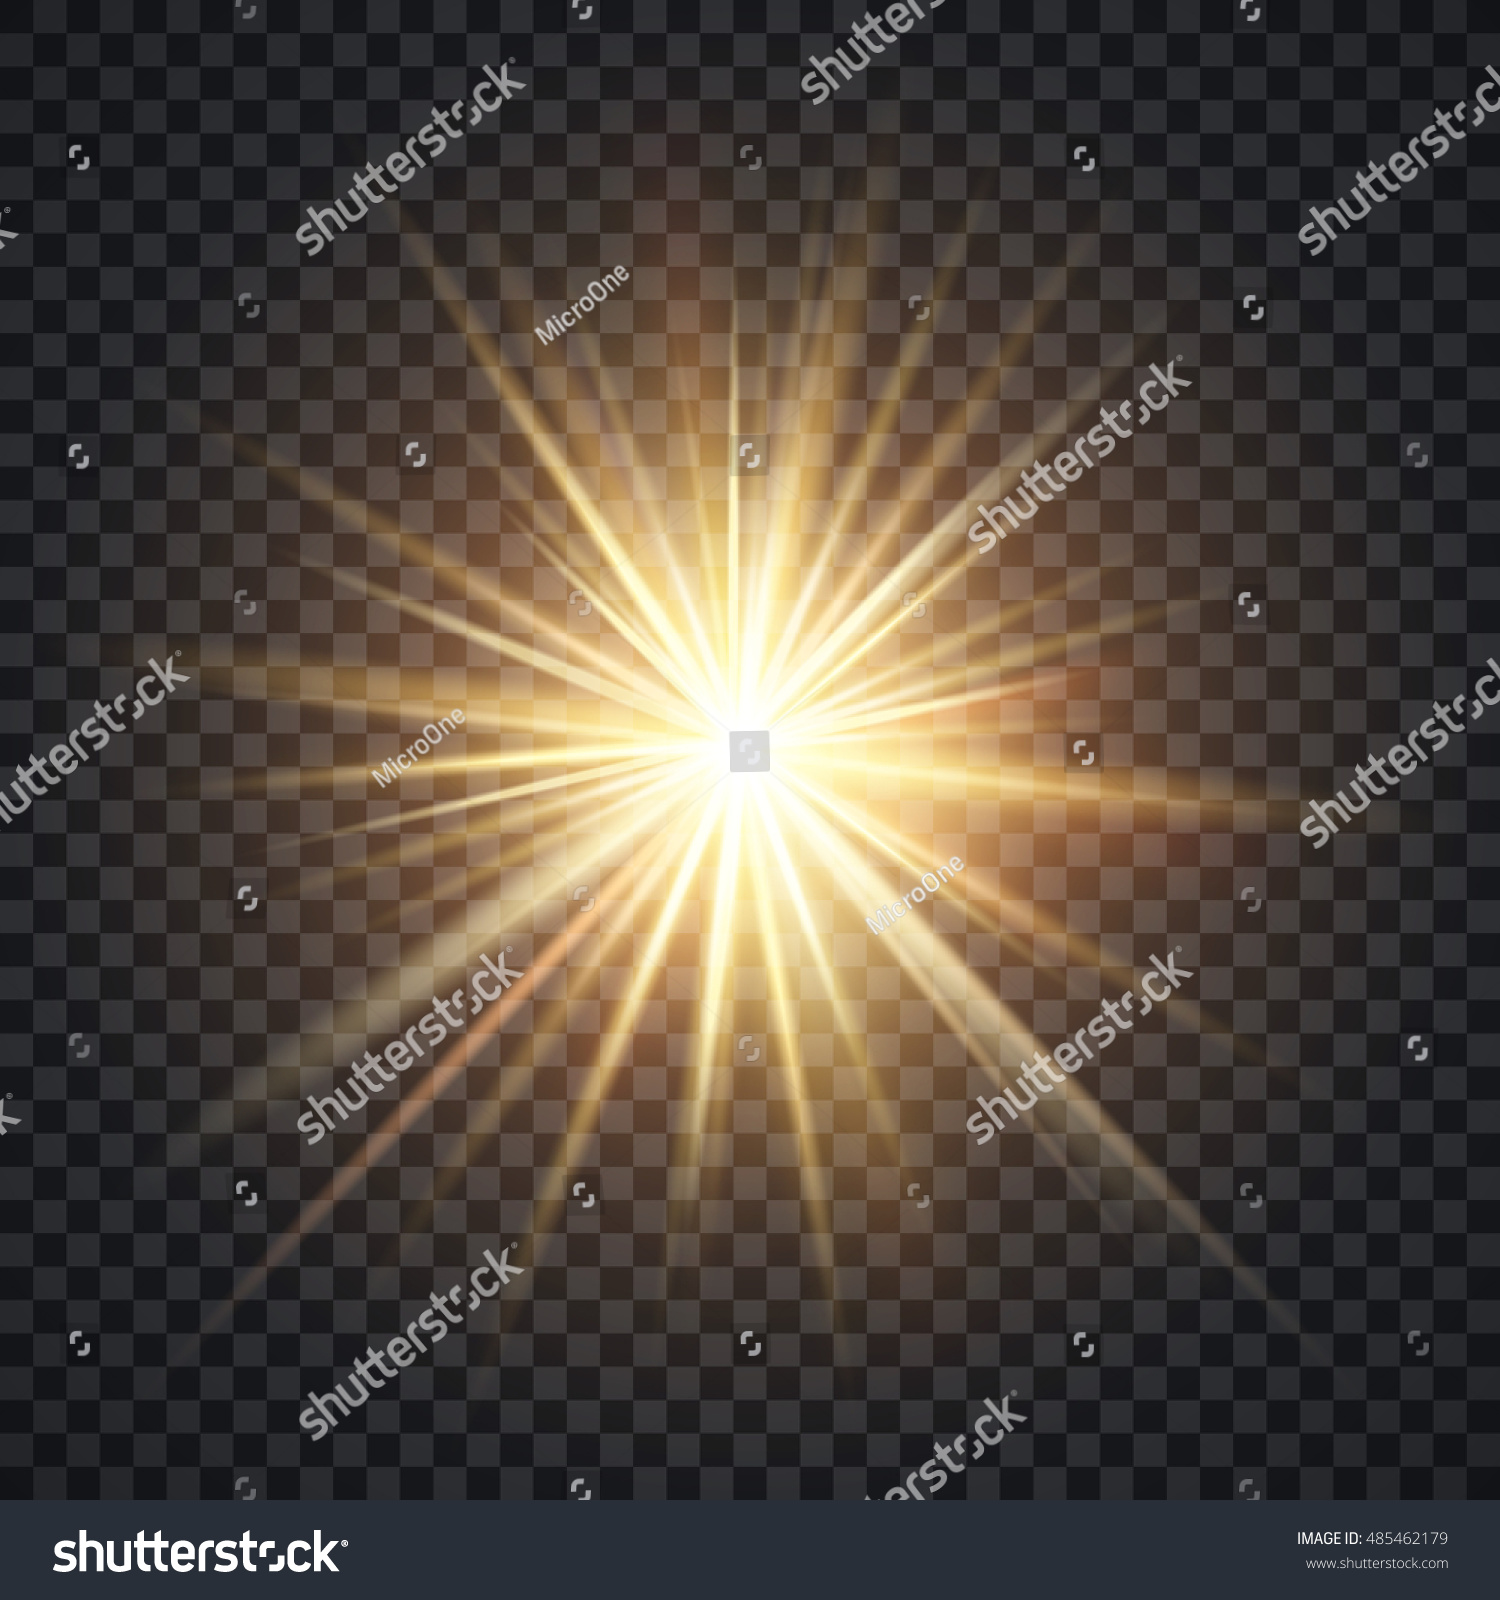 Vector Realistic Starburst Lighting Effect Yellow Sun With Rays And Glow On Transparent Background